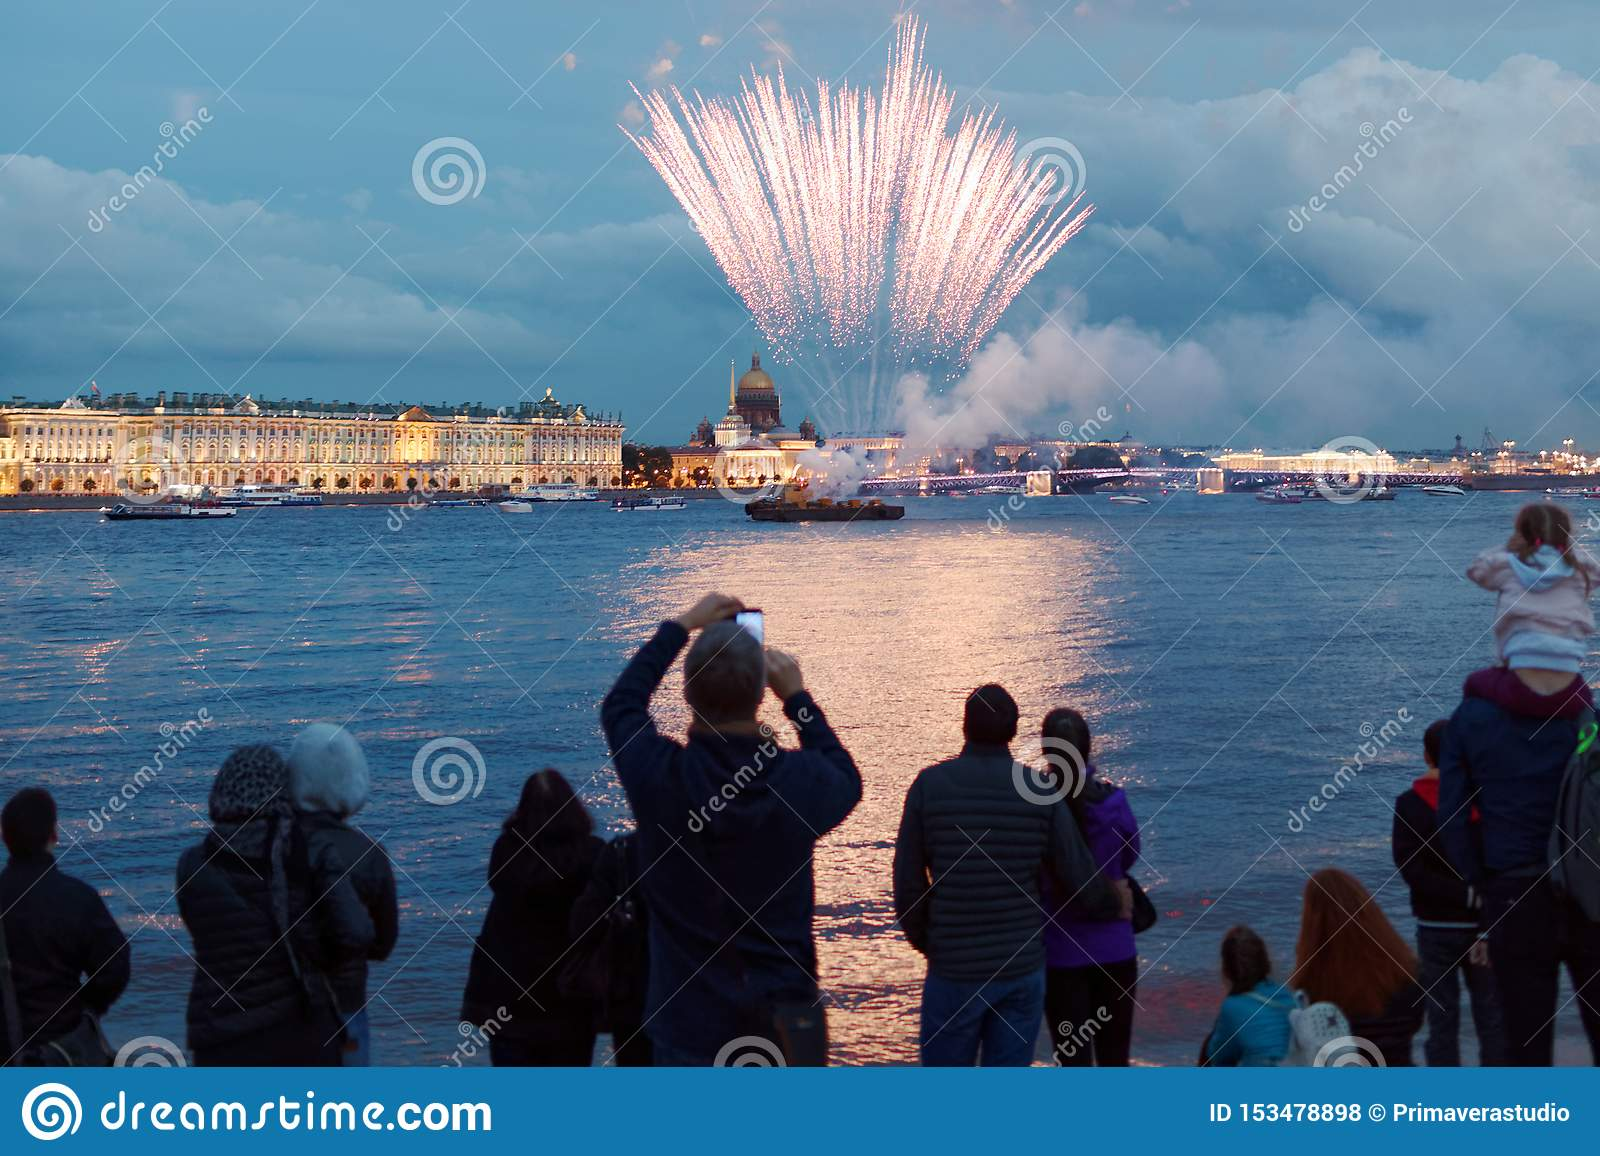 Fireworks Light Up the Skies Over St. Petersburg, Russia